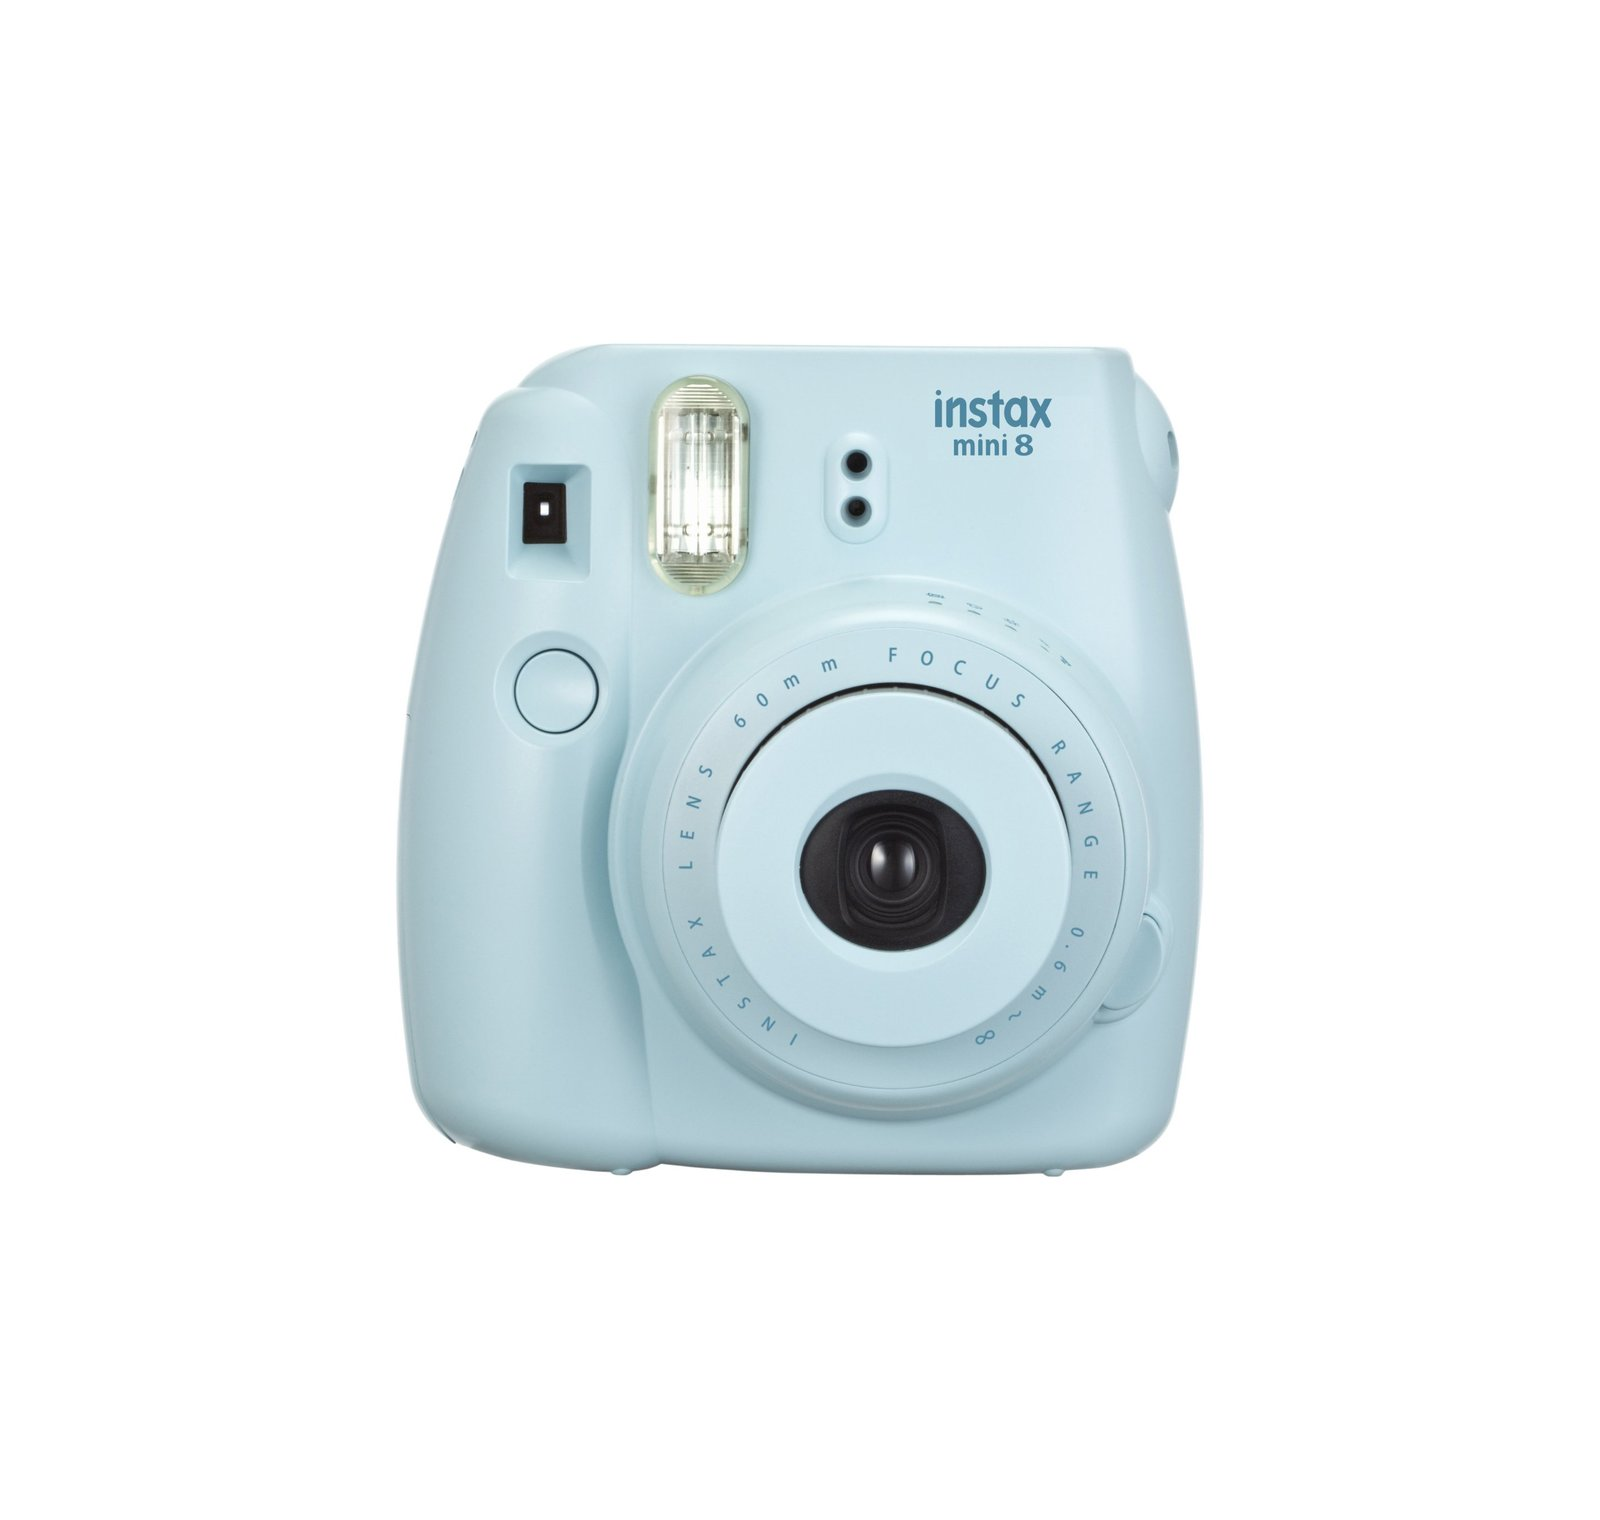 Fujifilm Instax Mini 8/8+  Photo 10 of 10 in The best cameras of 2016